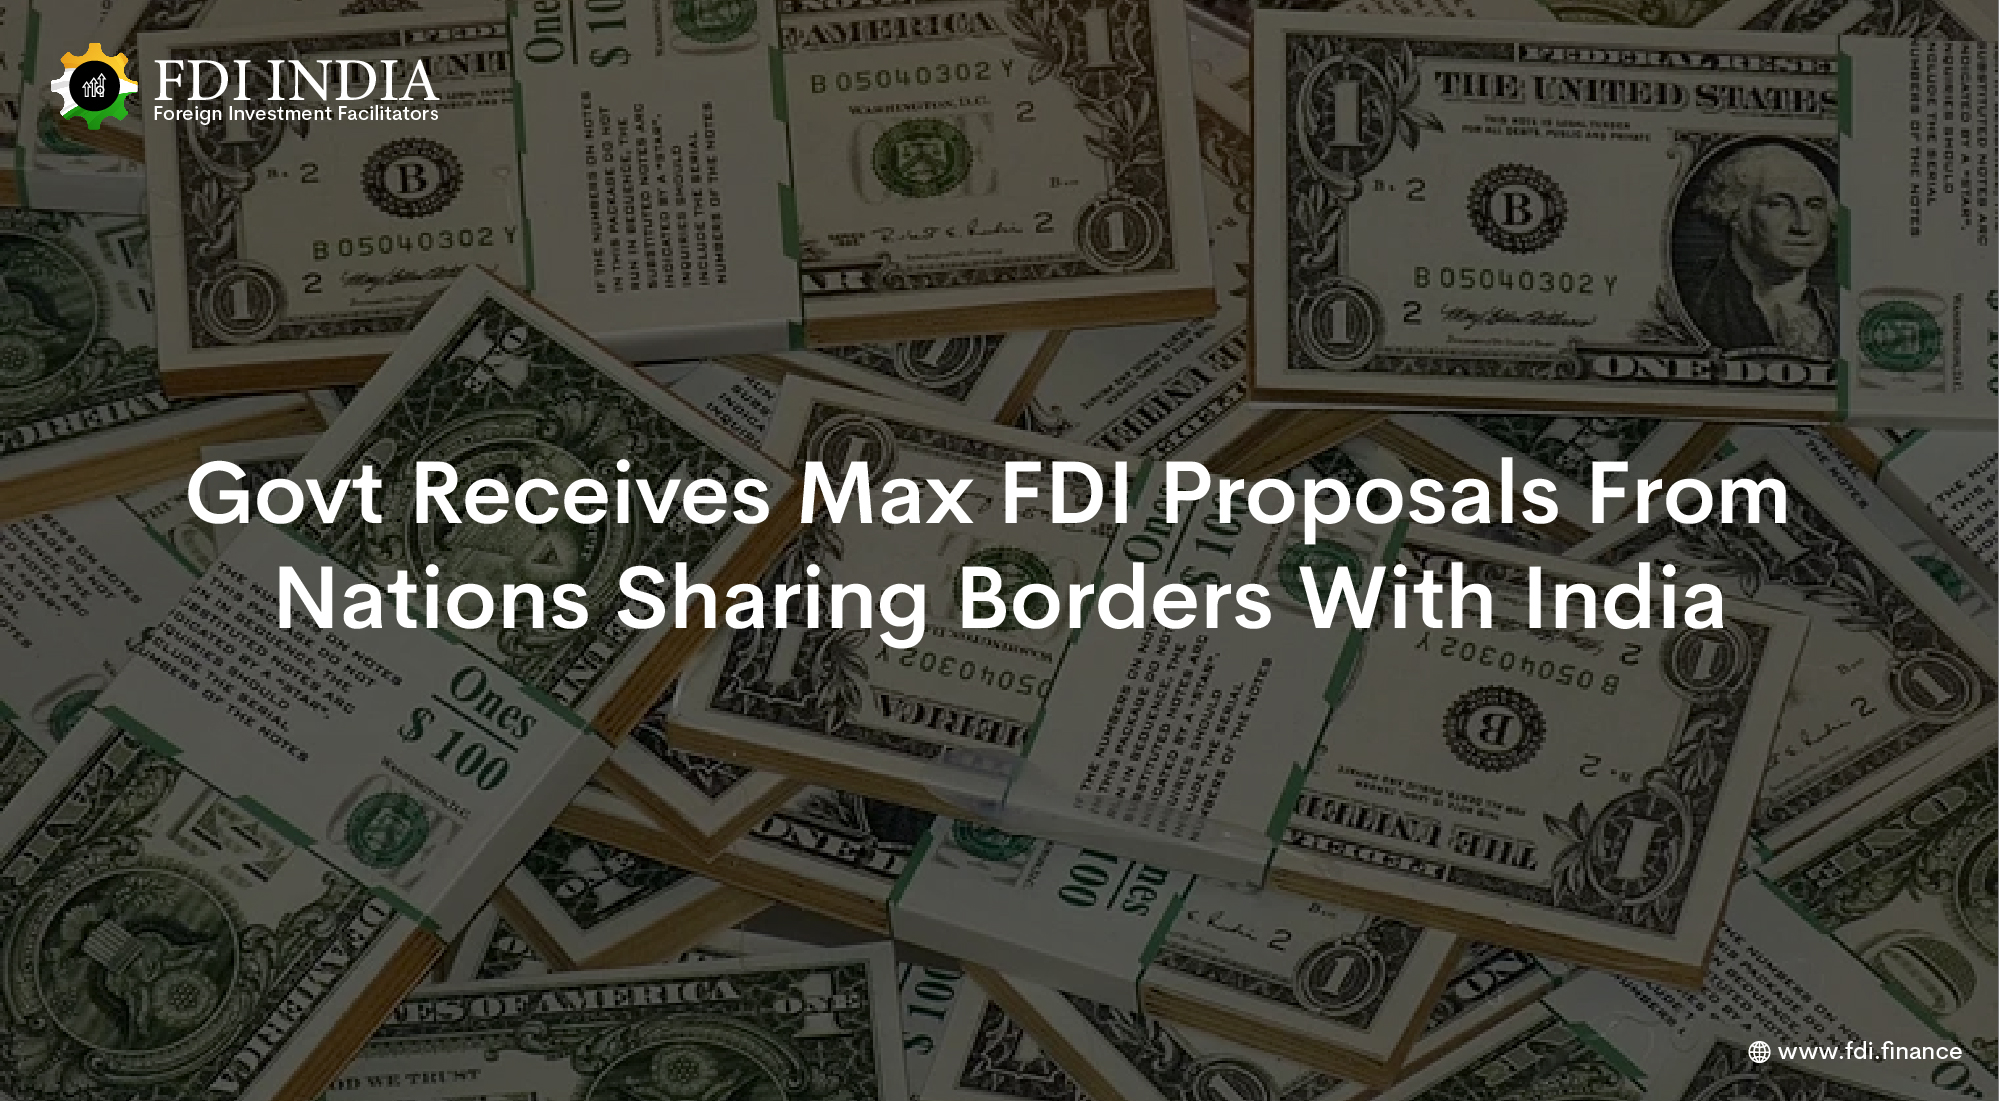 Govt Receives Max FDI Proposals From Nations Sharing Borders With India